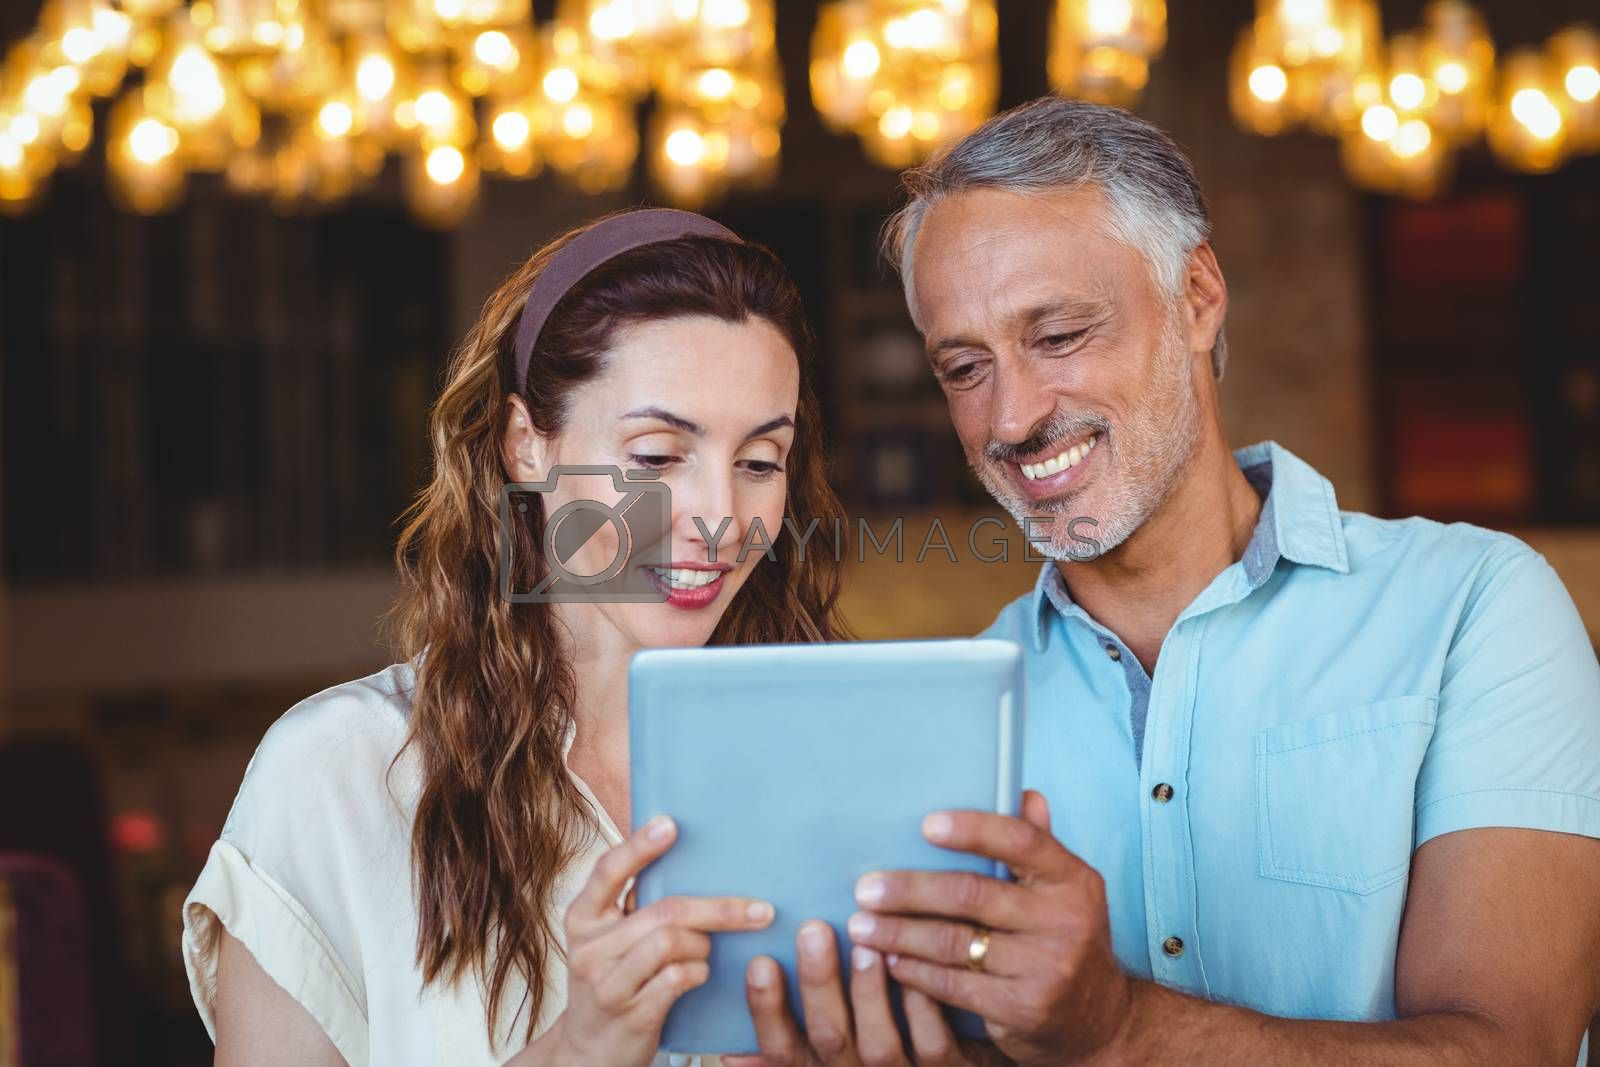 Royalty free image of Happy couple using tablet together  by Wavebreakmedia